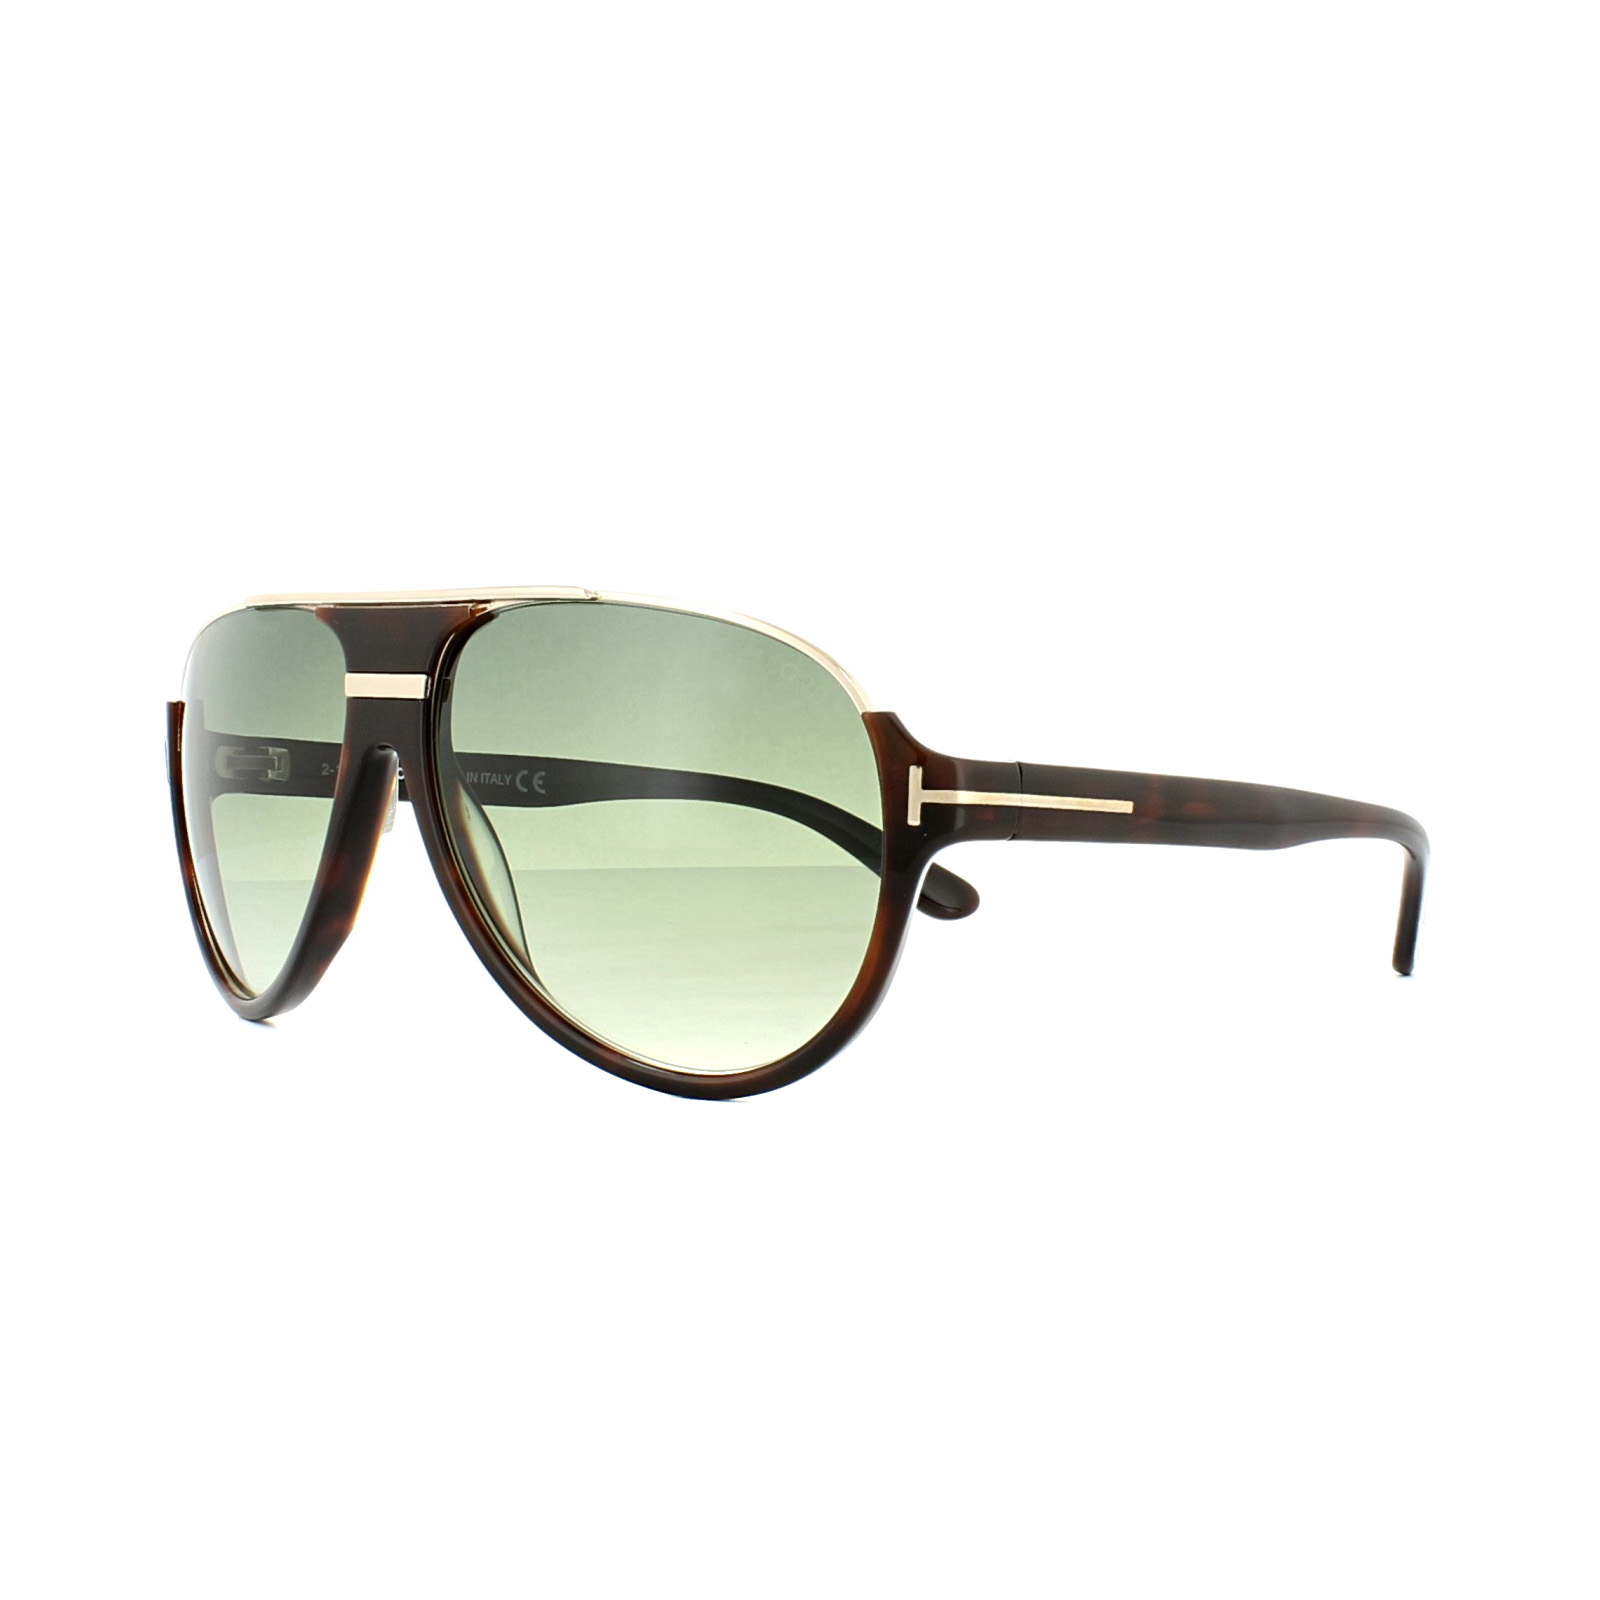 Tom Ford Sonnenbrille havanna/gold pA8QLXWaz